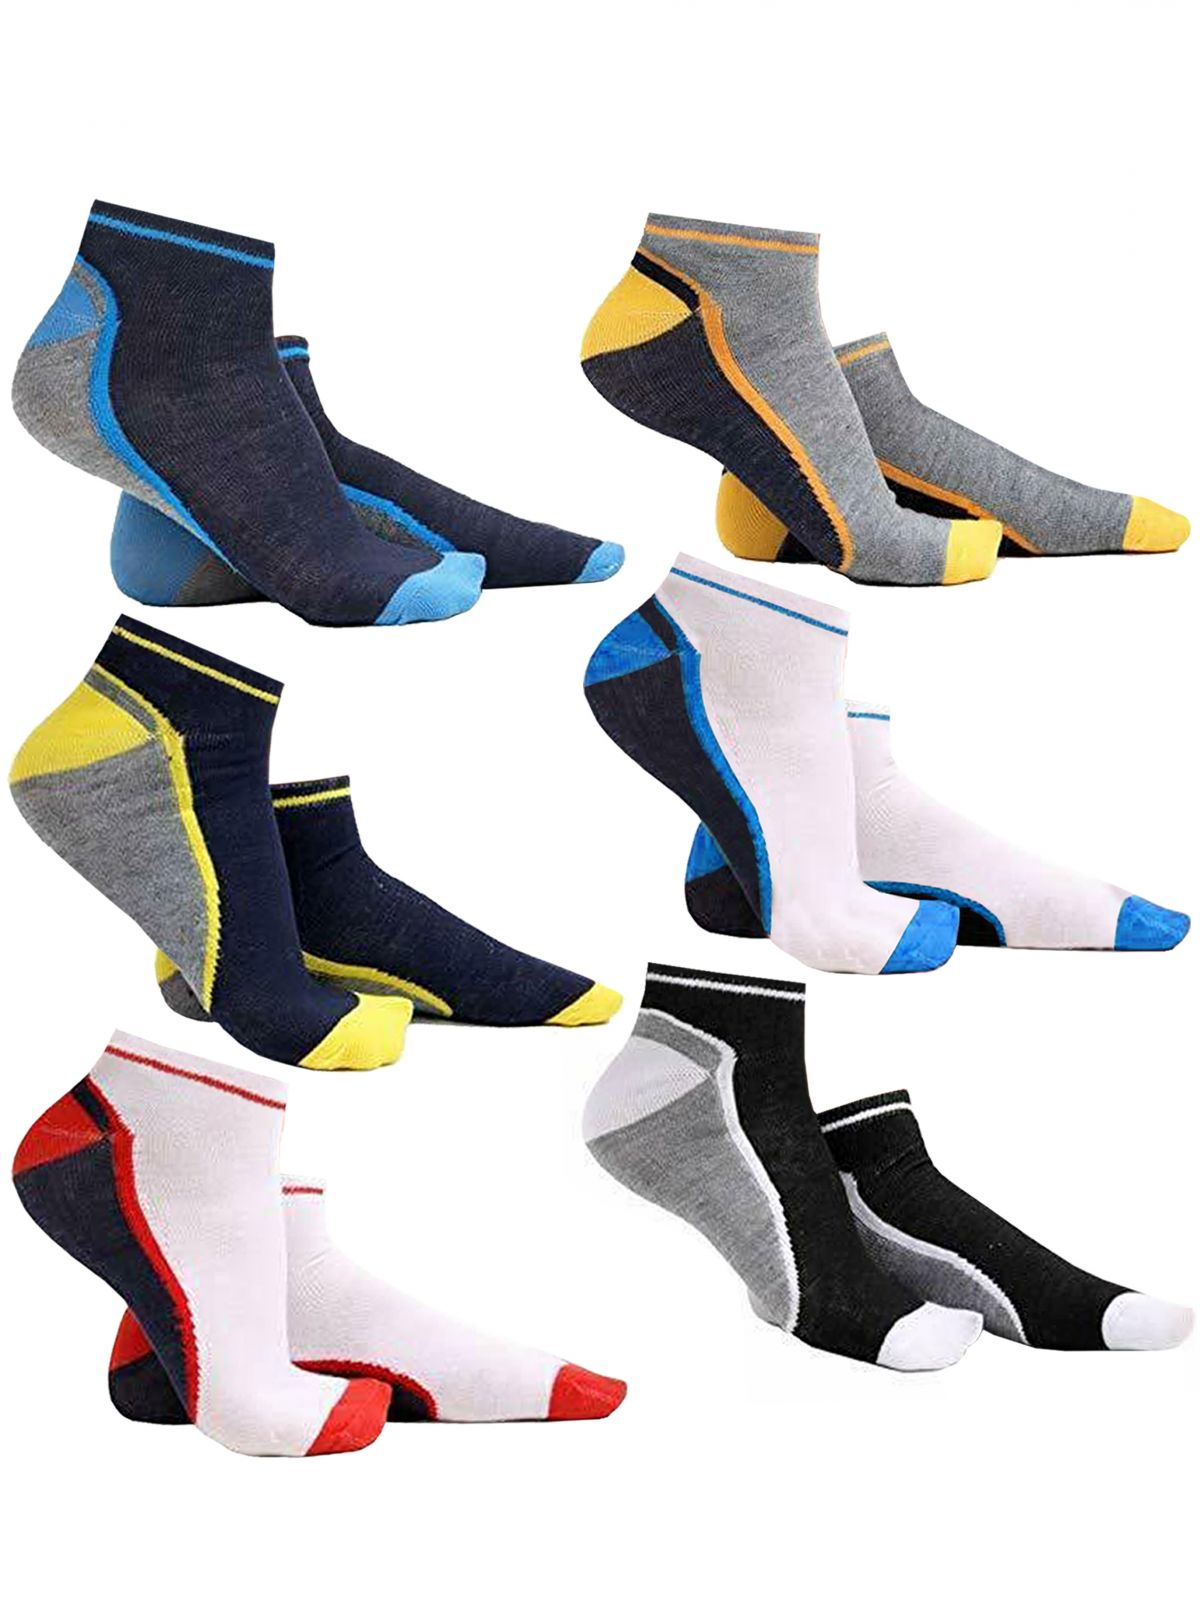 Accessories | Mens Designer Multicolour Ankle Socks, From £3.98, Guest Brand, in Multicolour | Raw Denim Outlet